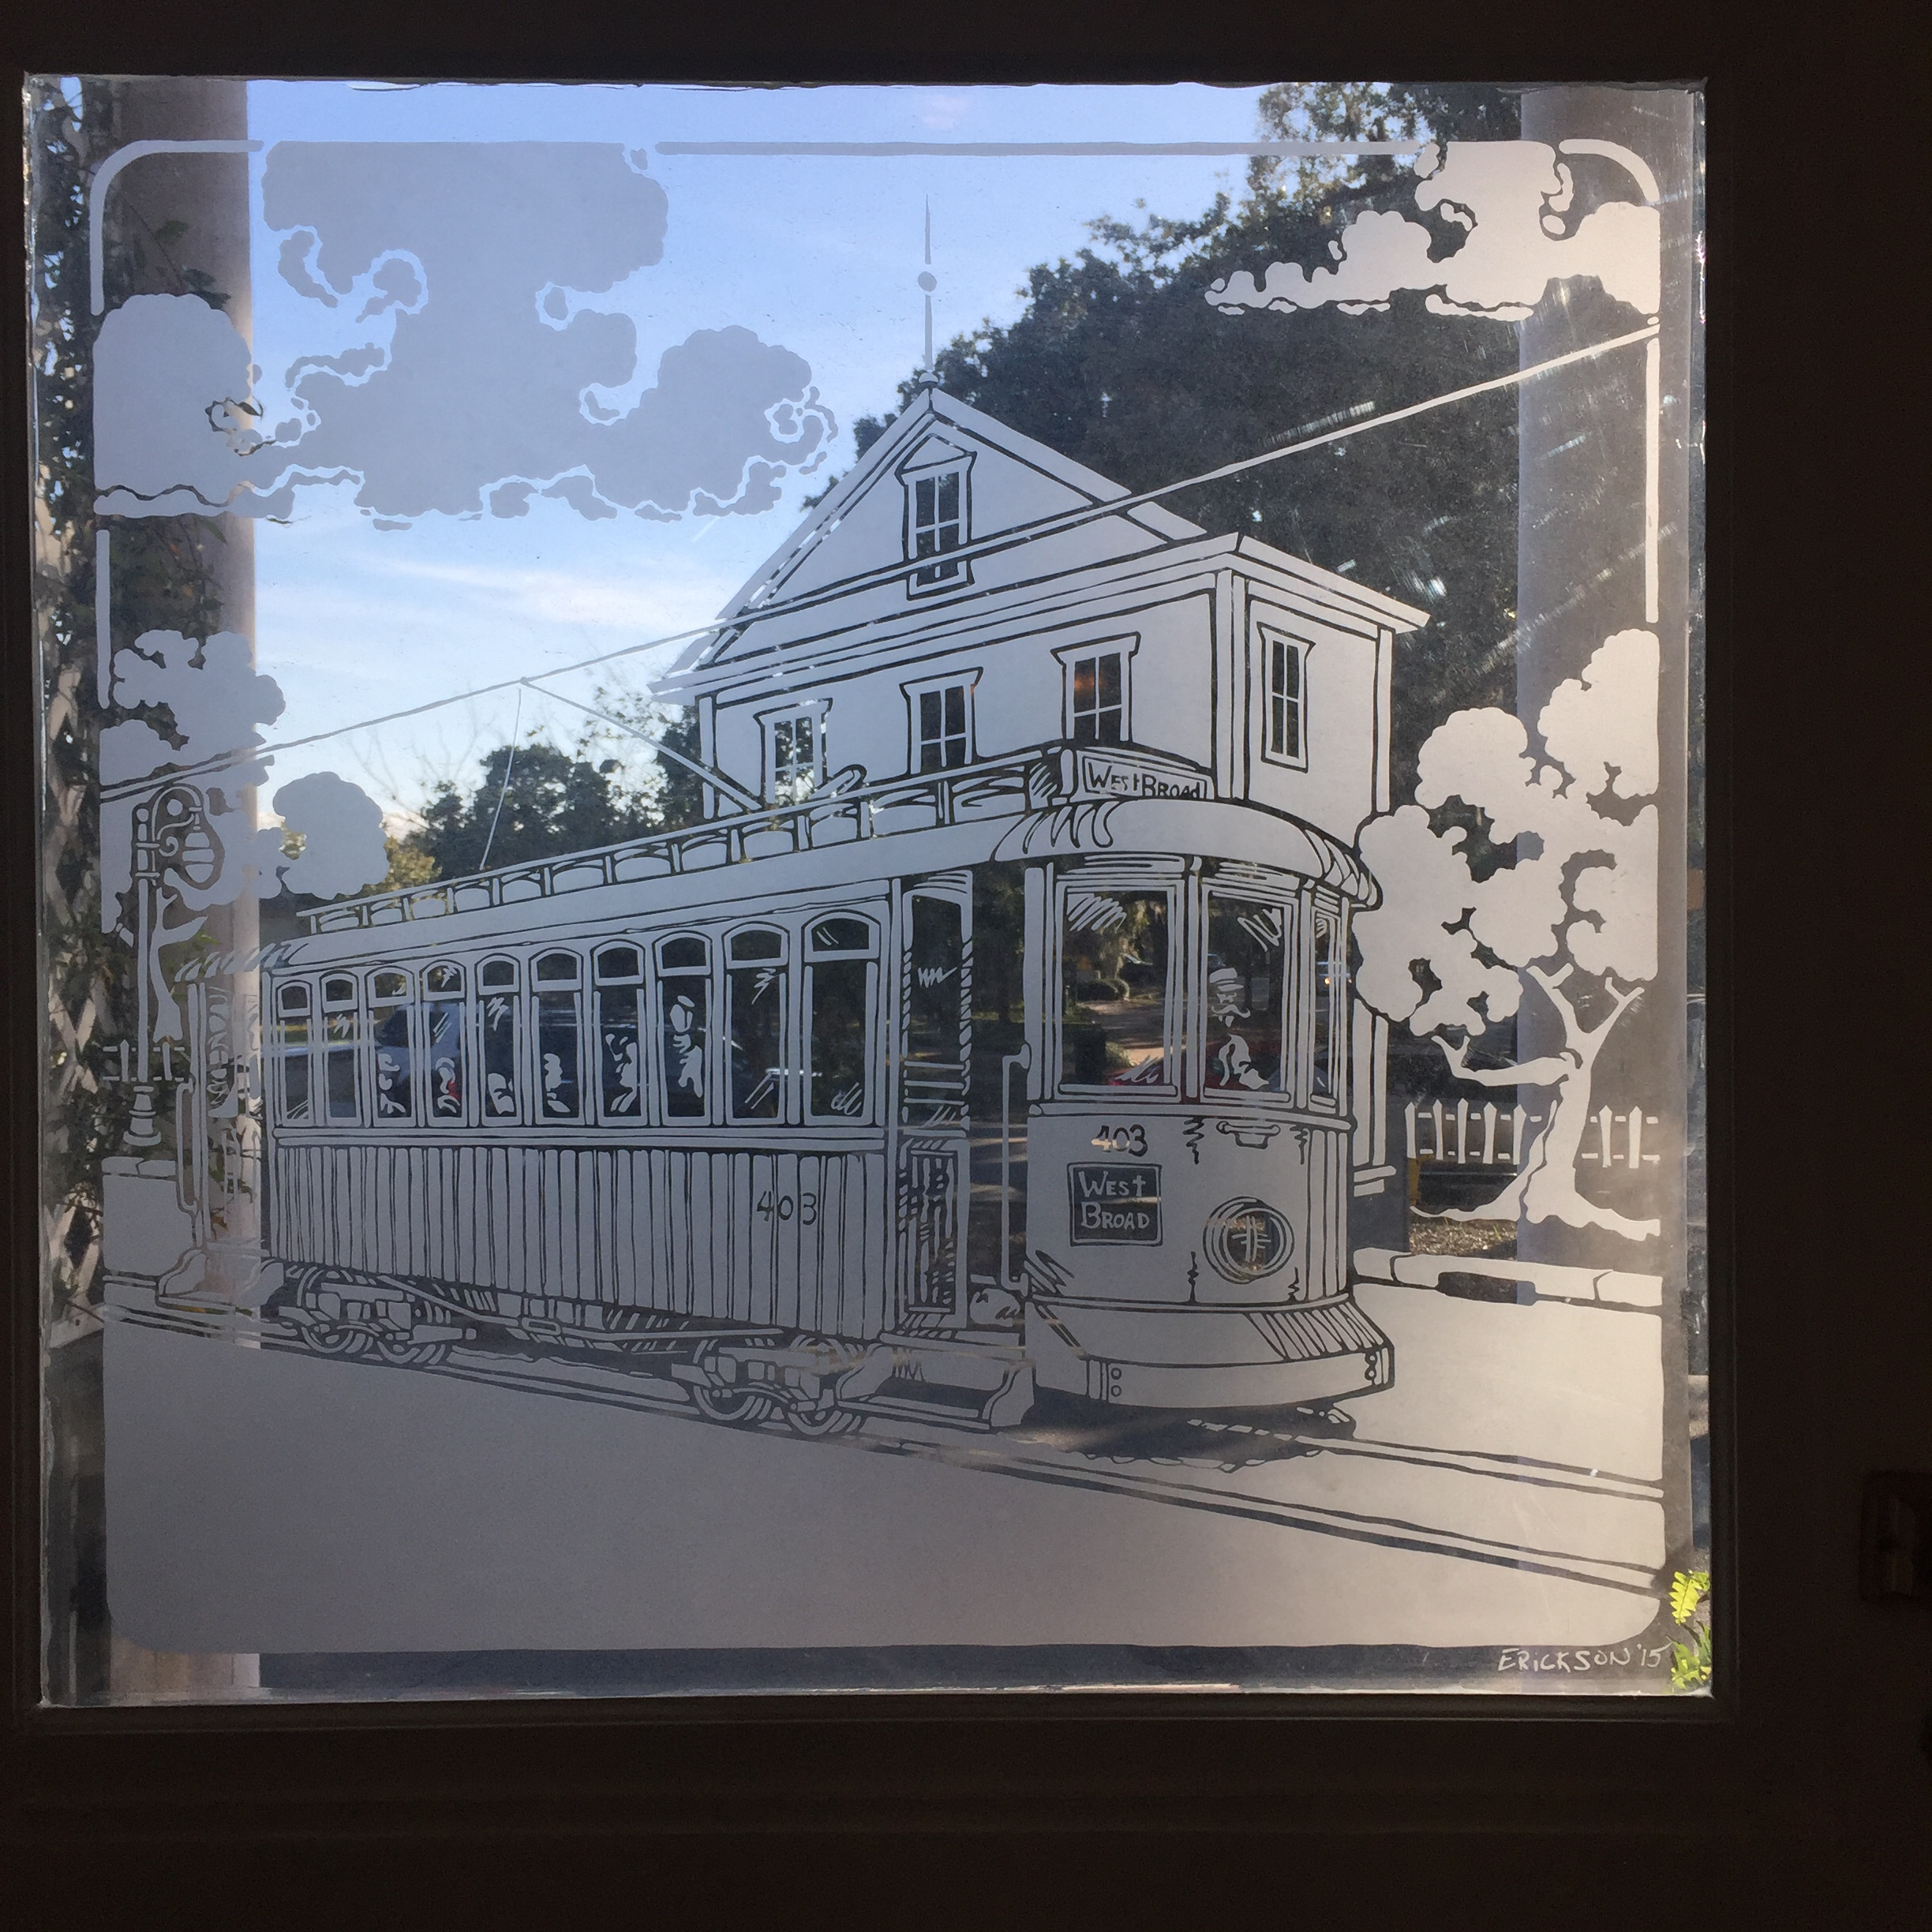 An etched pane on the front door shows West Broad Street in Savannah during the time of street cars.